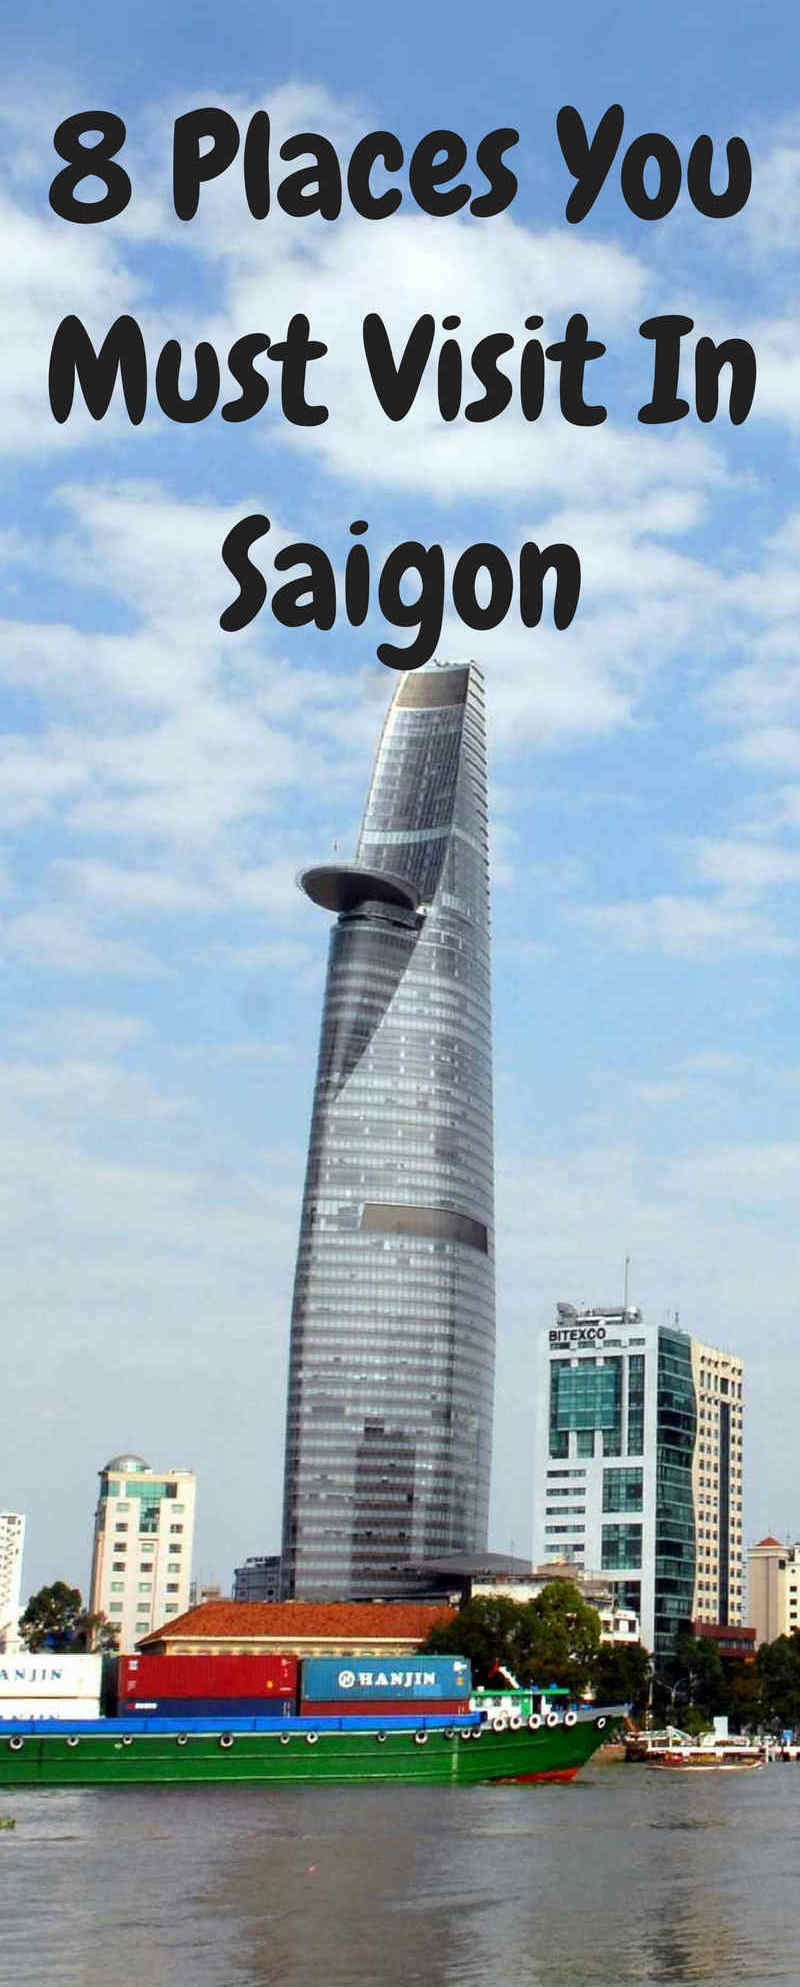 8 Places You Must Visit In Saigon | Top Places In Ho Chi Minh City | Saigon | Ho Chi Minh | Vietnam | SE Asia | SE Asia Packing List | SE Asia Itinerary | SE Asia Packing List | SE Asia Travel | SE Asia Outfits | Travel | ARoadtoTravel.com